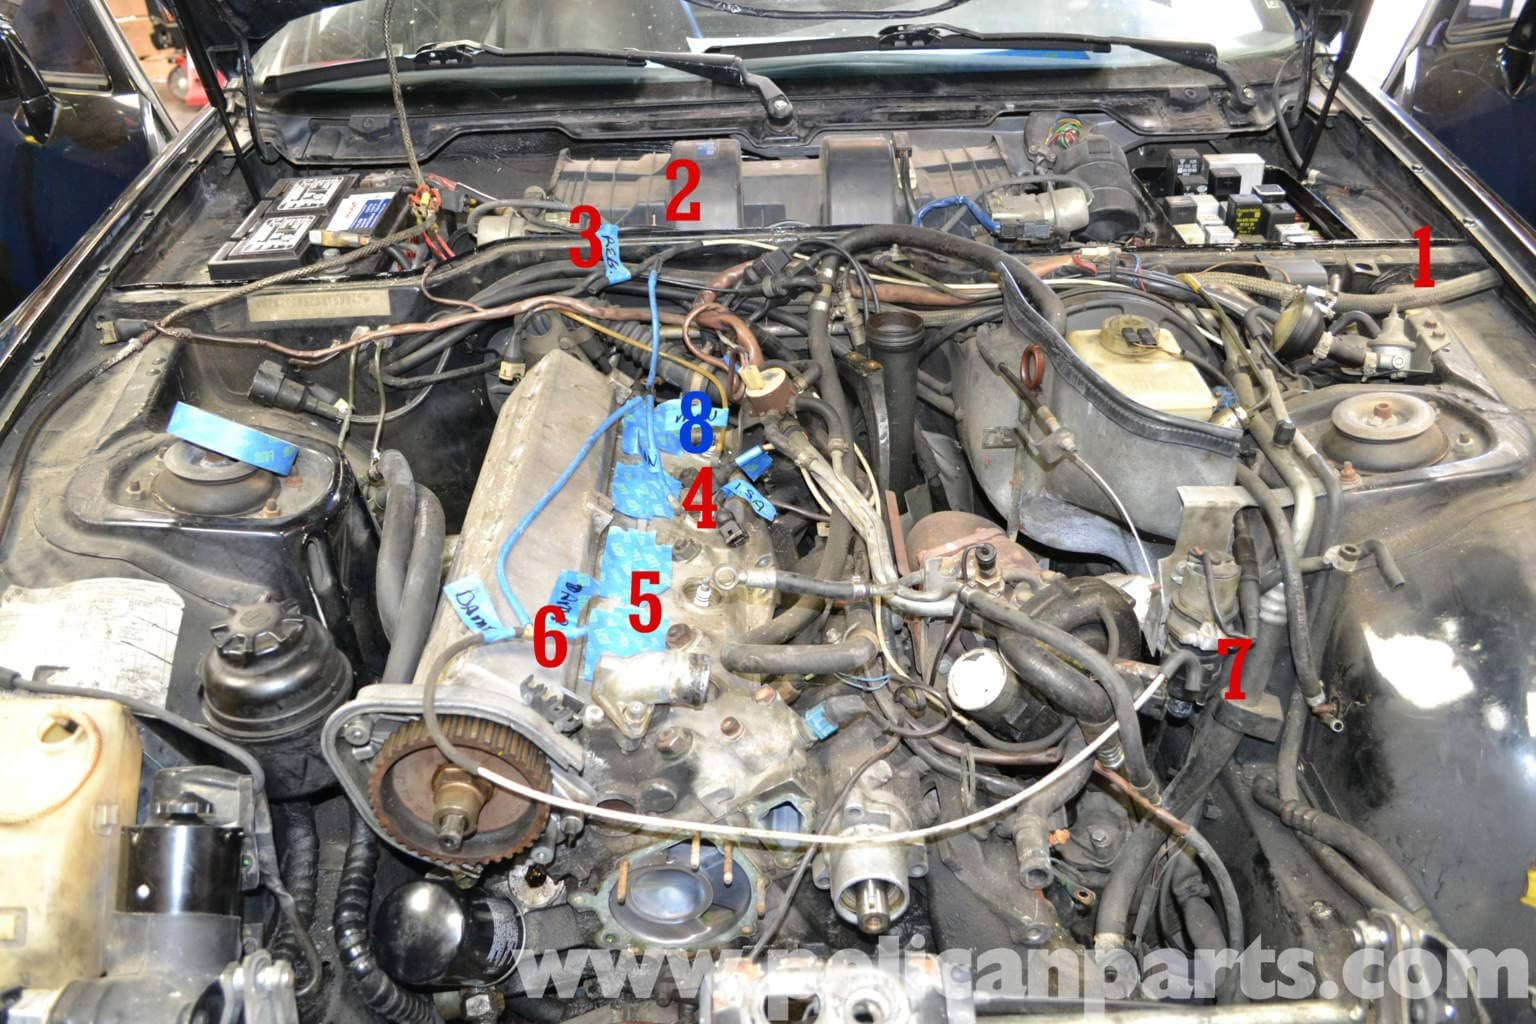 hight resolution of 84 porsche 944 engine diagram 84 get free image about wiring diagram 1980 toyota pickup 1980 toyota pickup